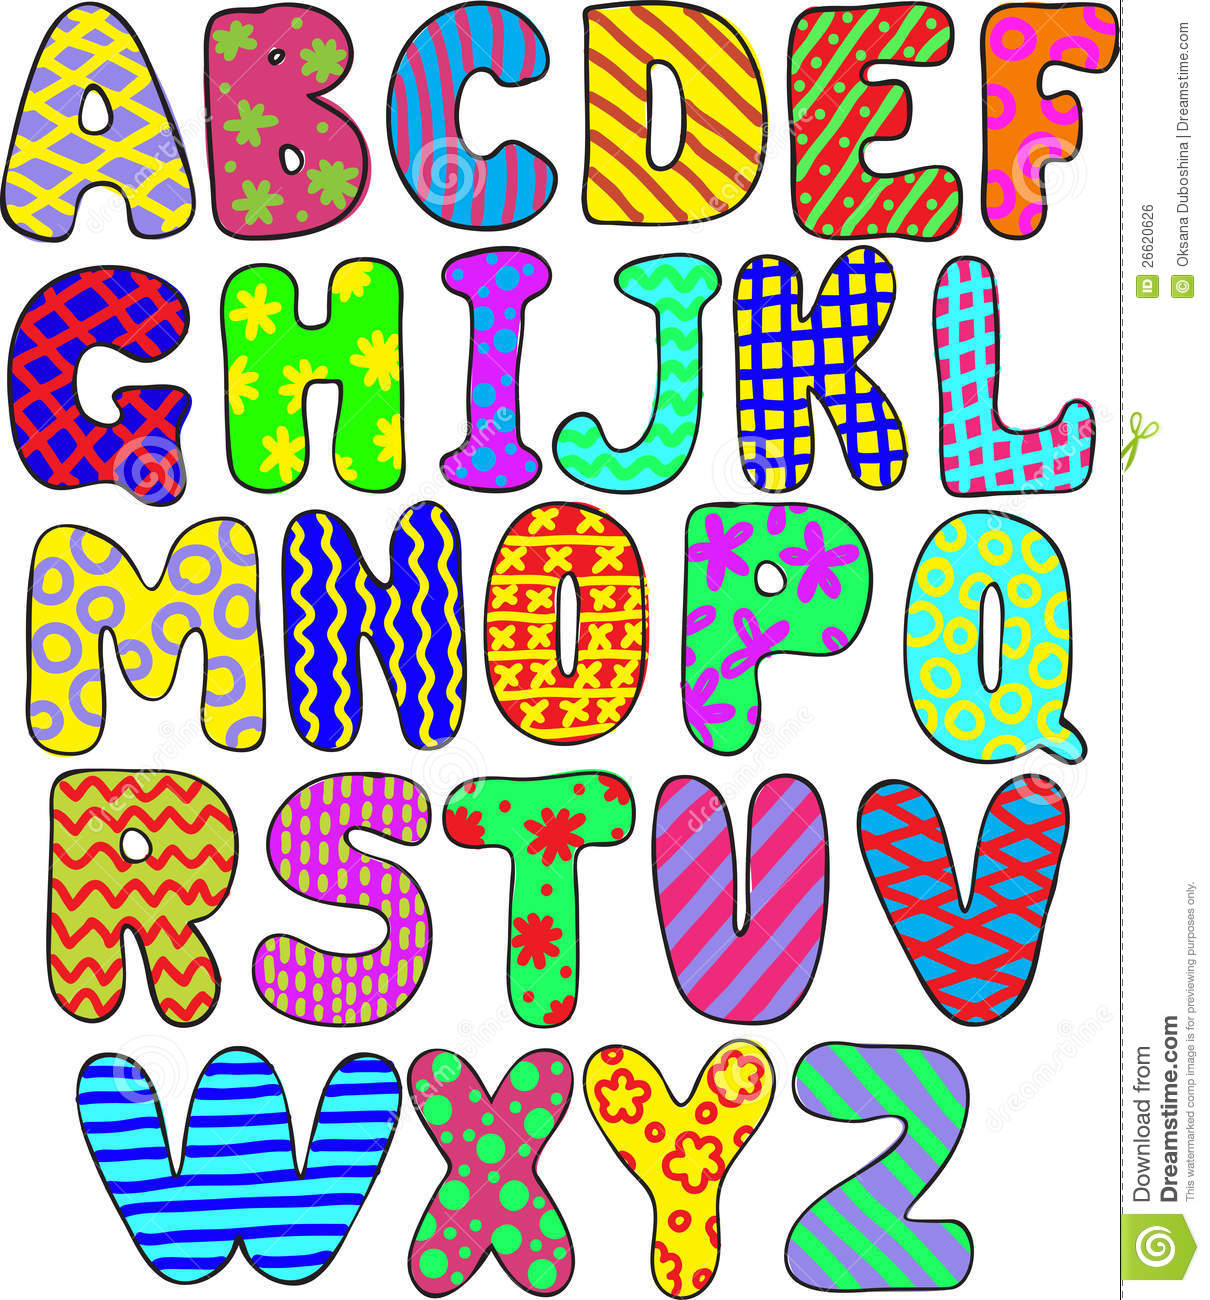 Colorful alphabet royalty free stock image image 26620626 for Alphabet photo letters